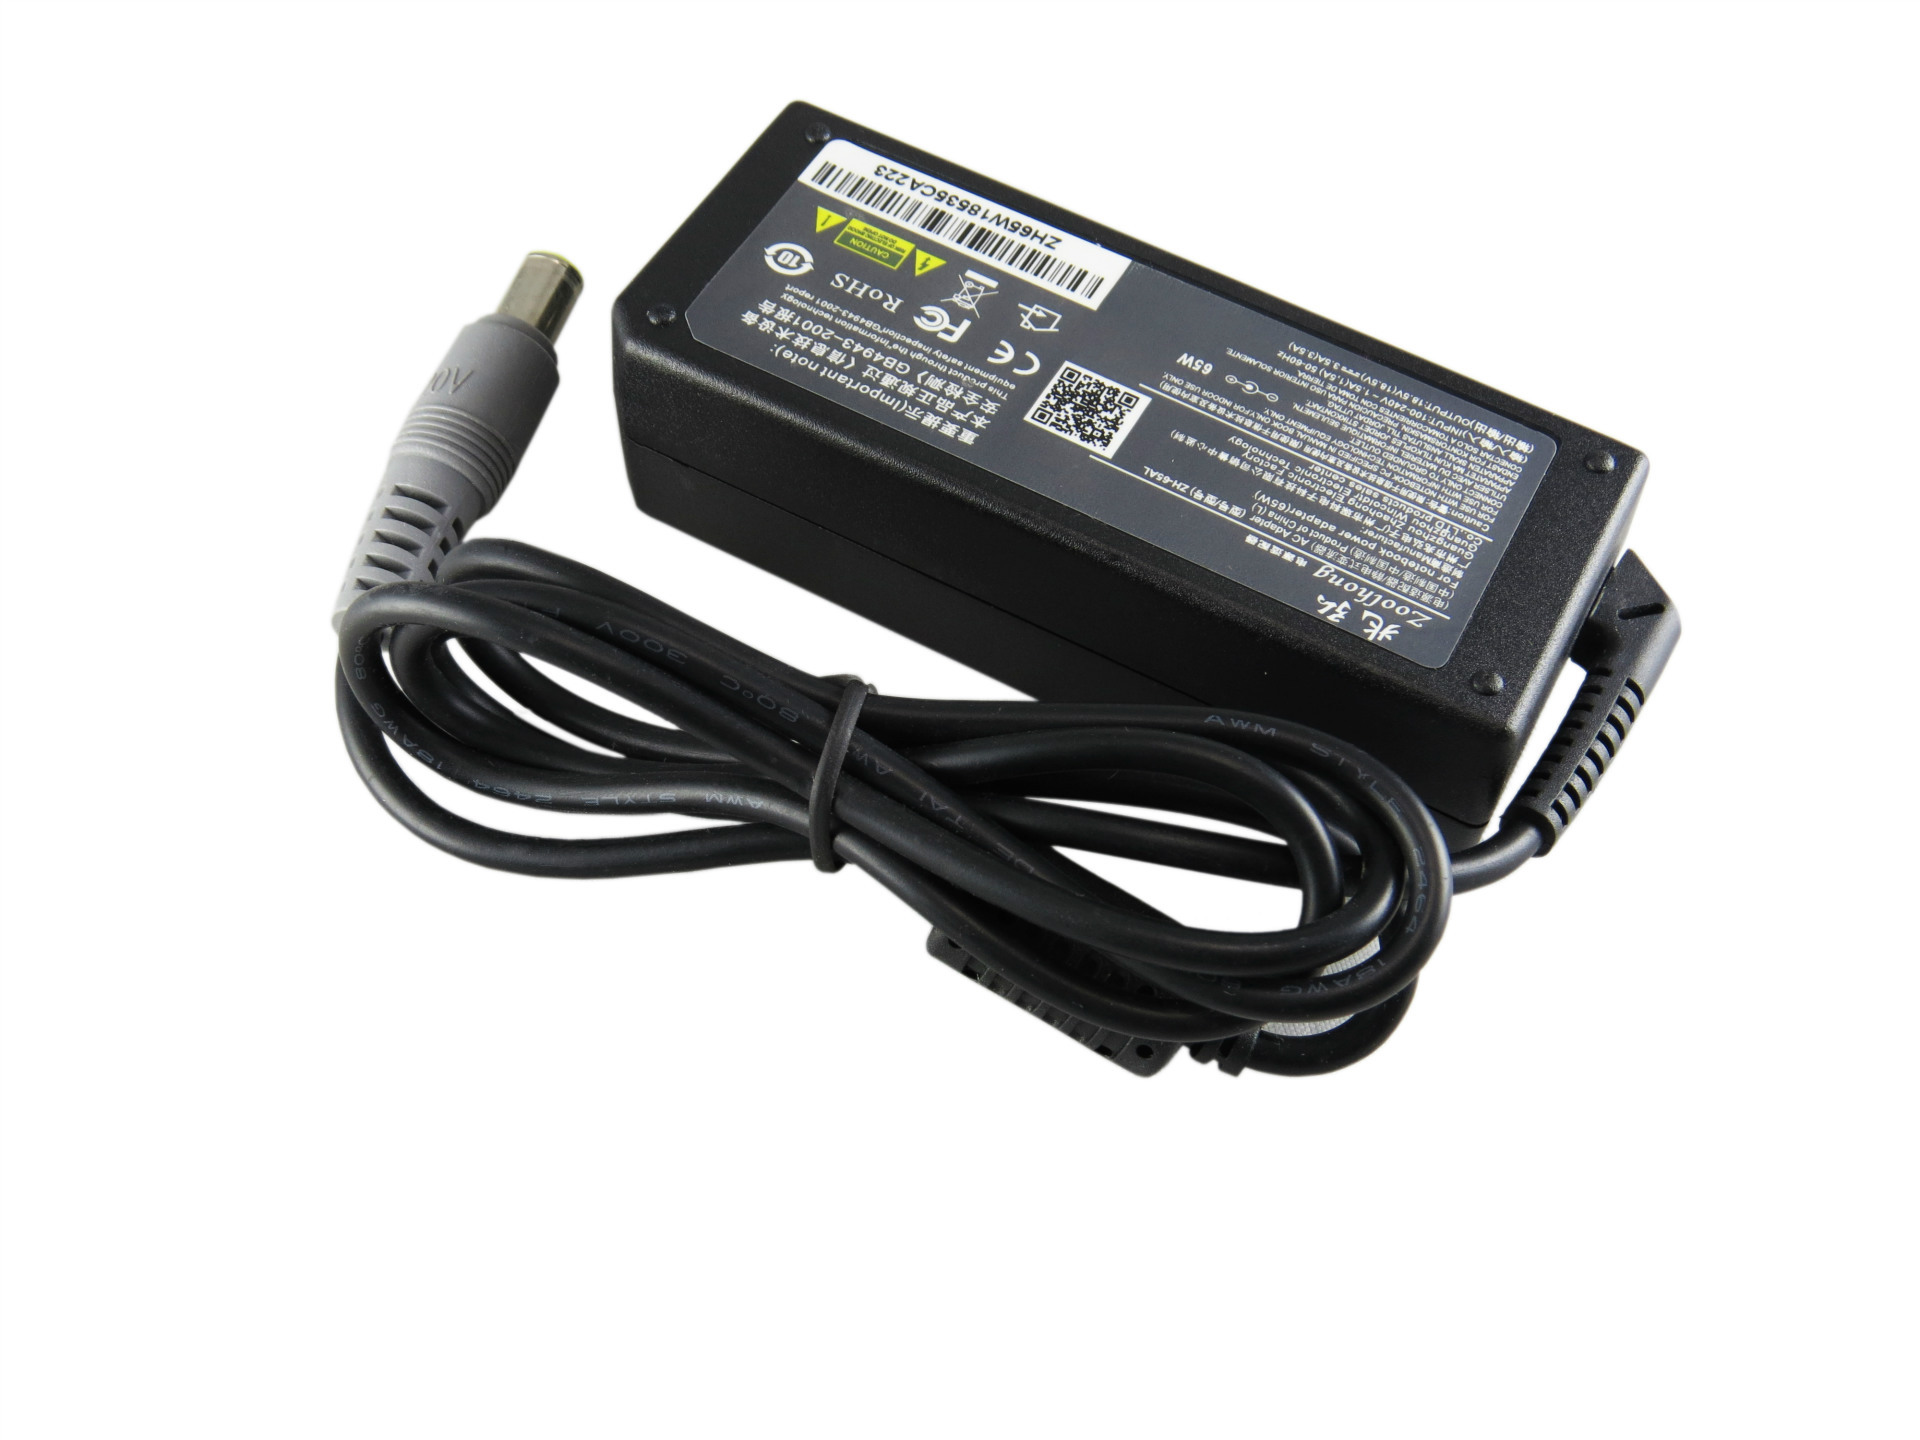 20V 4.5A 90W Laptop Ac Power Adapter Pengecas Untuk Lenovo R61 R61E T60 T61 X61 Sl400 X200 T410 8.0Mm * 5.5Mm